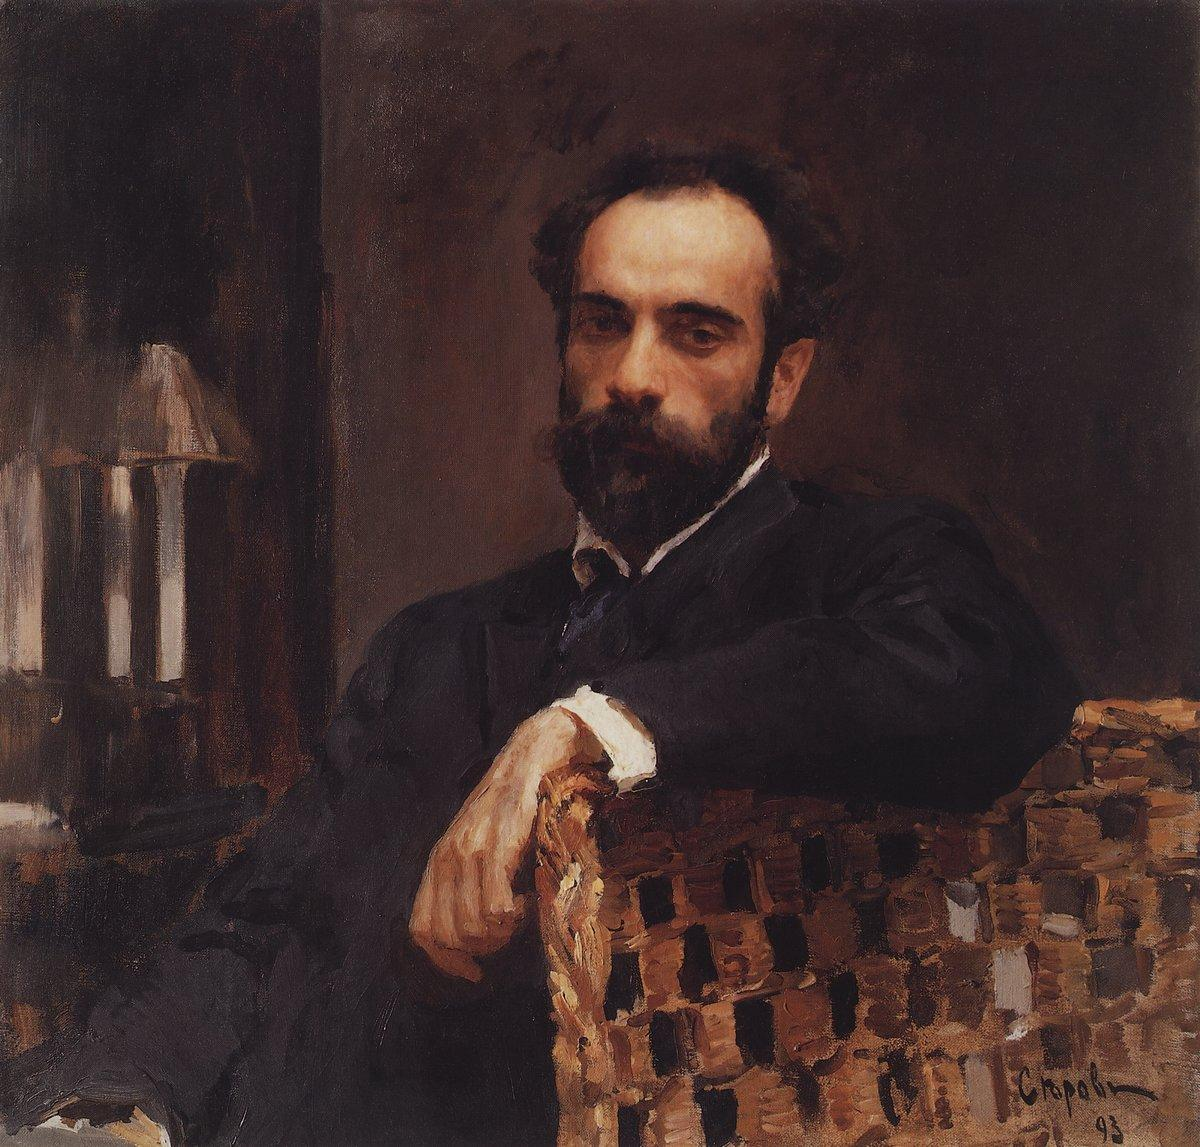 Valentin Serov Portrait of the artist Isaac Levitan, oil on canvas (1893)